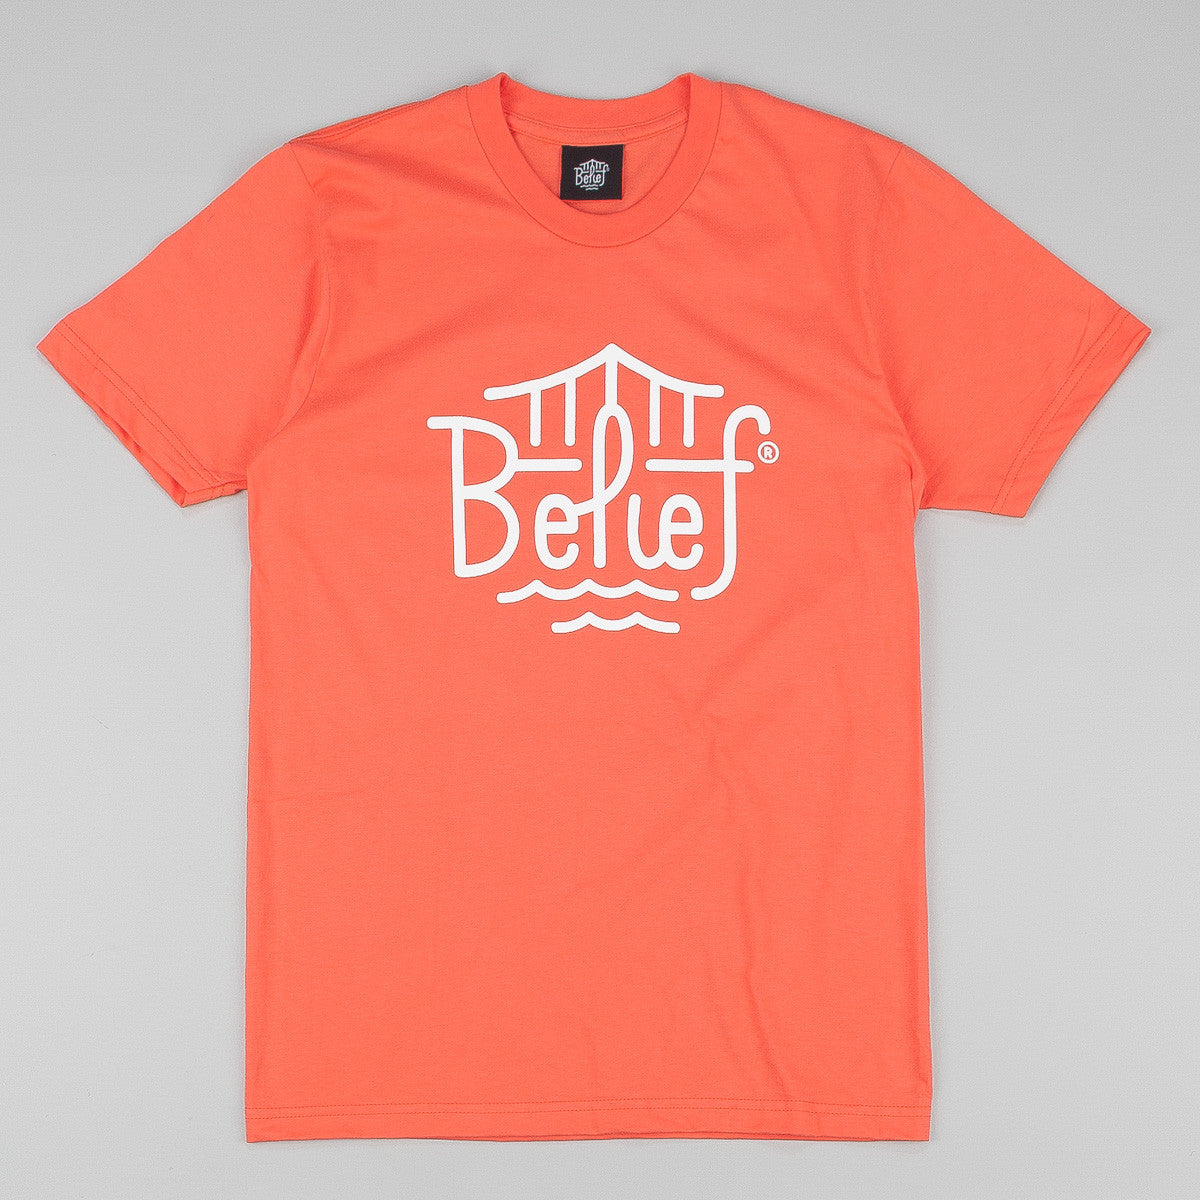 Belief Triboro T-Shirt